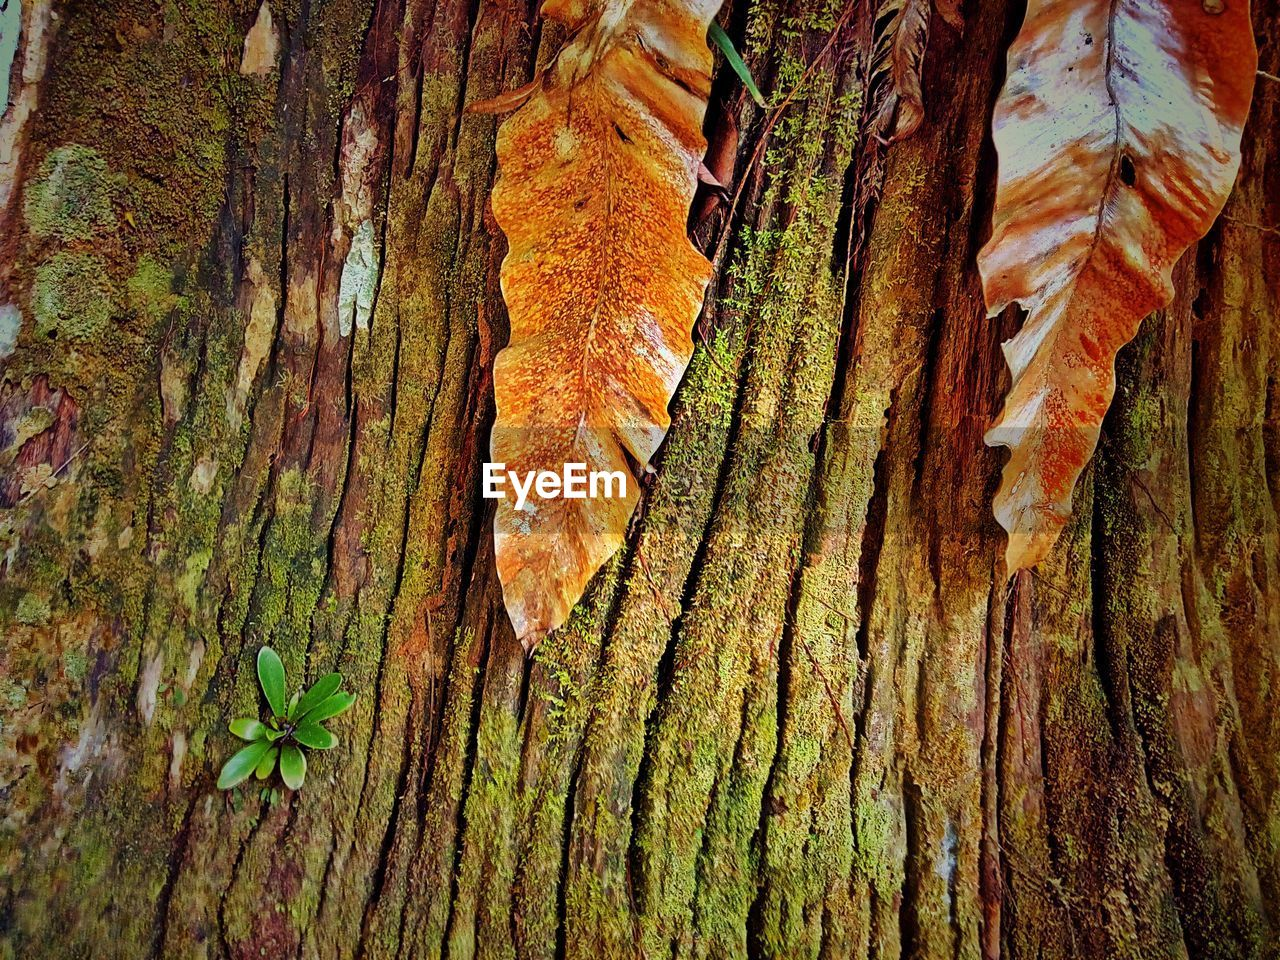 tree trunk, trunk, plant, tree, growth, textured, nature, no people, close-up, full frame, beauty in nature, day, rough, pattern, backgrounds, outdoors, plant bark, natural pattern, brown, bark, lichen